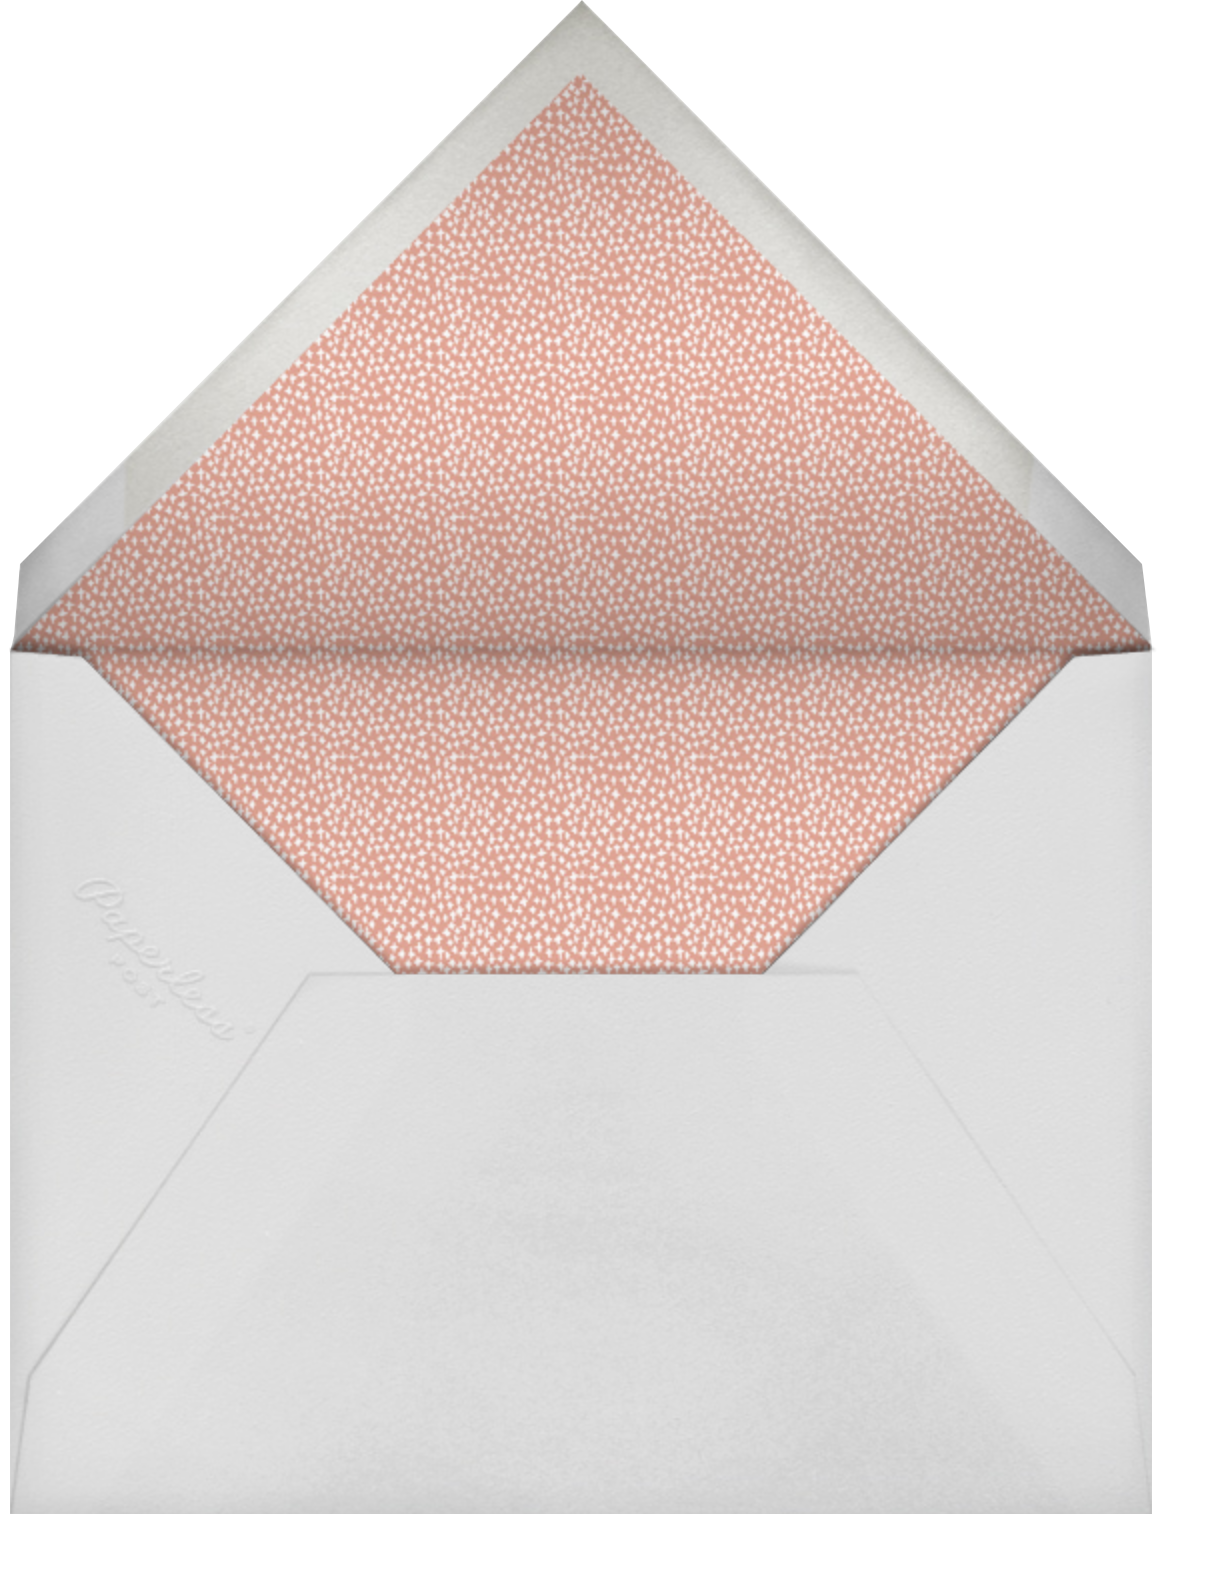 Chocolate Croissants - Pinks - Mr. Boddington's Studio - Wedding brunch - envelope back